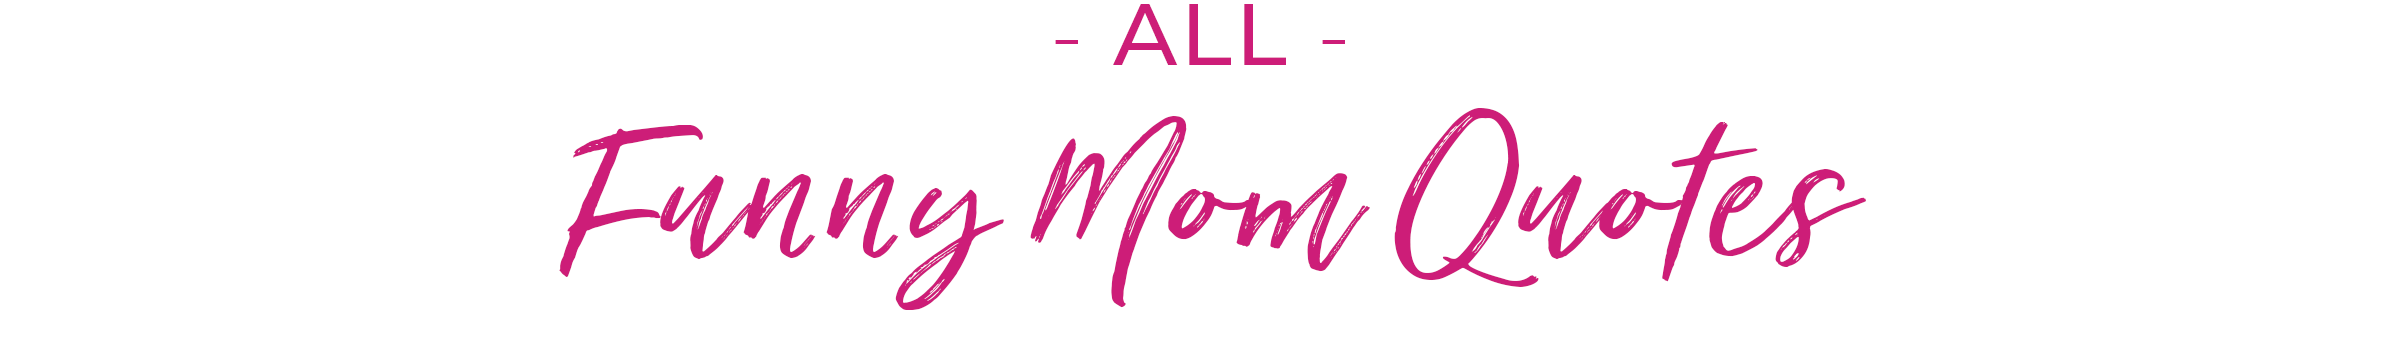 All funny mom quotes - smile, shop, then share on Instagram, Facebook, Pinterest and Twitter!